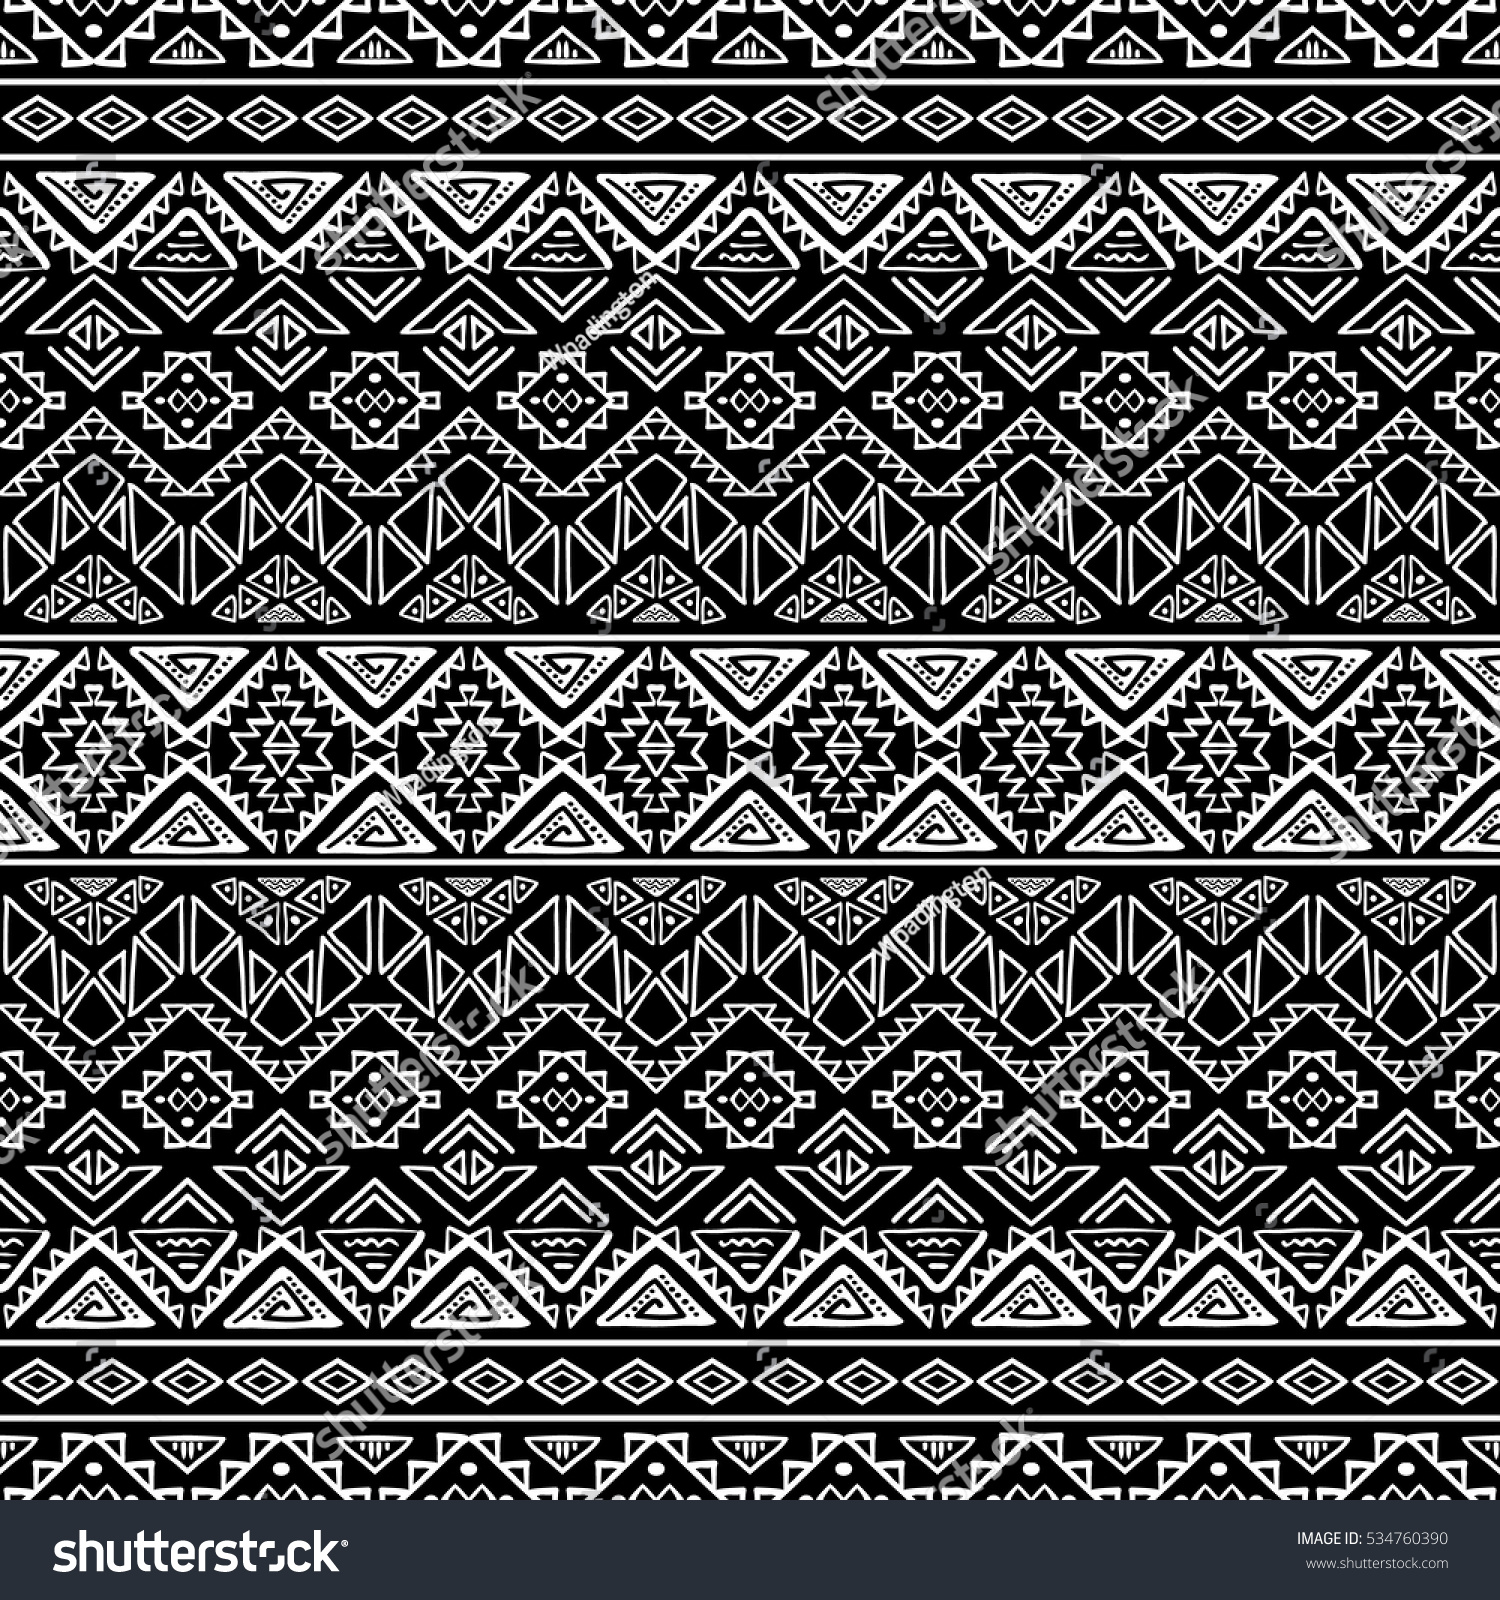 Black And White Seamless Pattern With Tribal Aztec Ornament Hand Drawn Boho Wallpaper